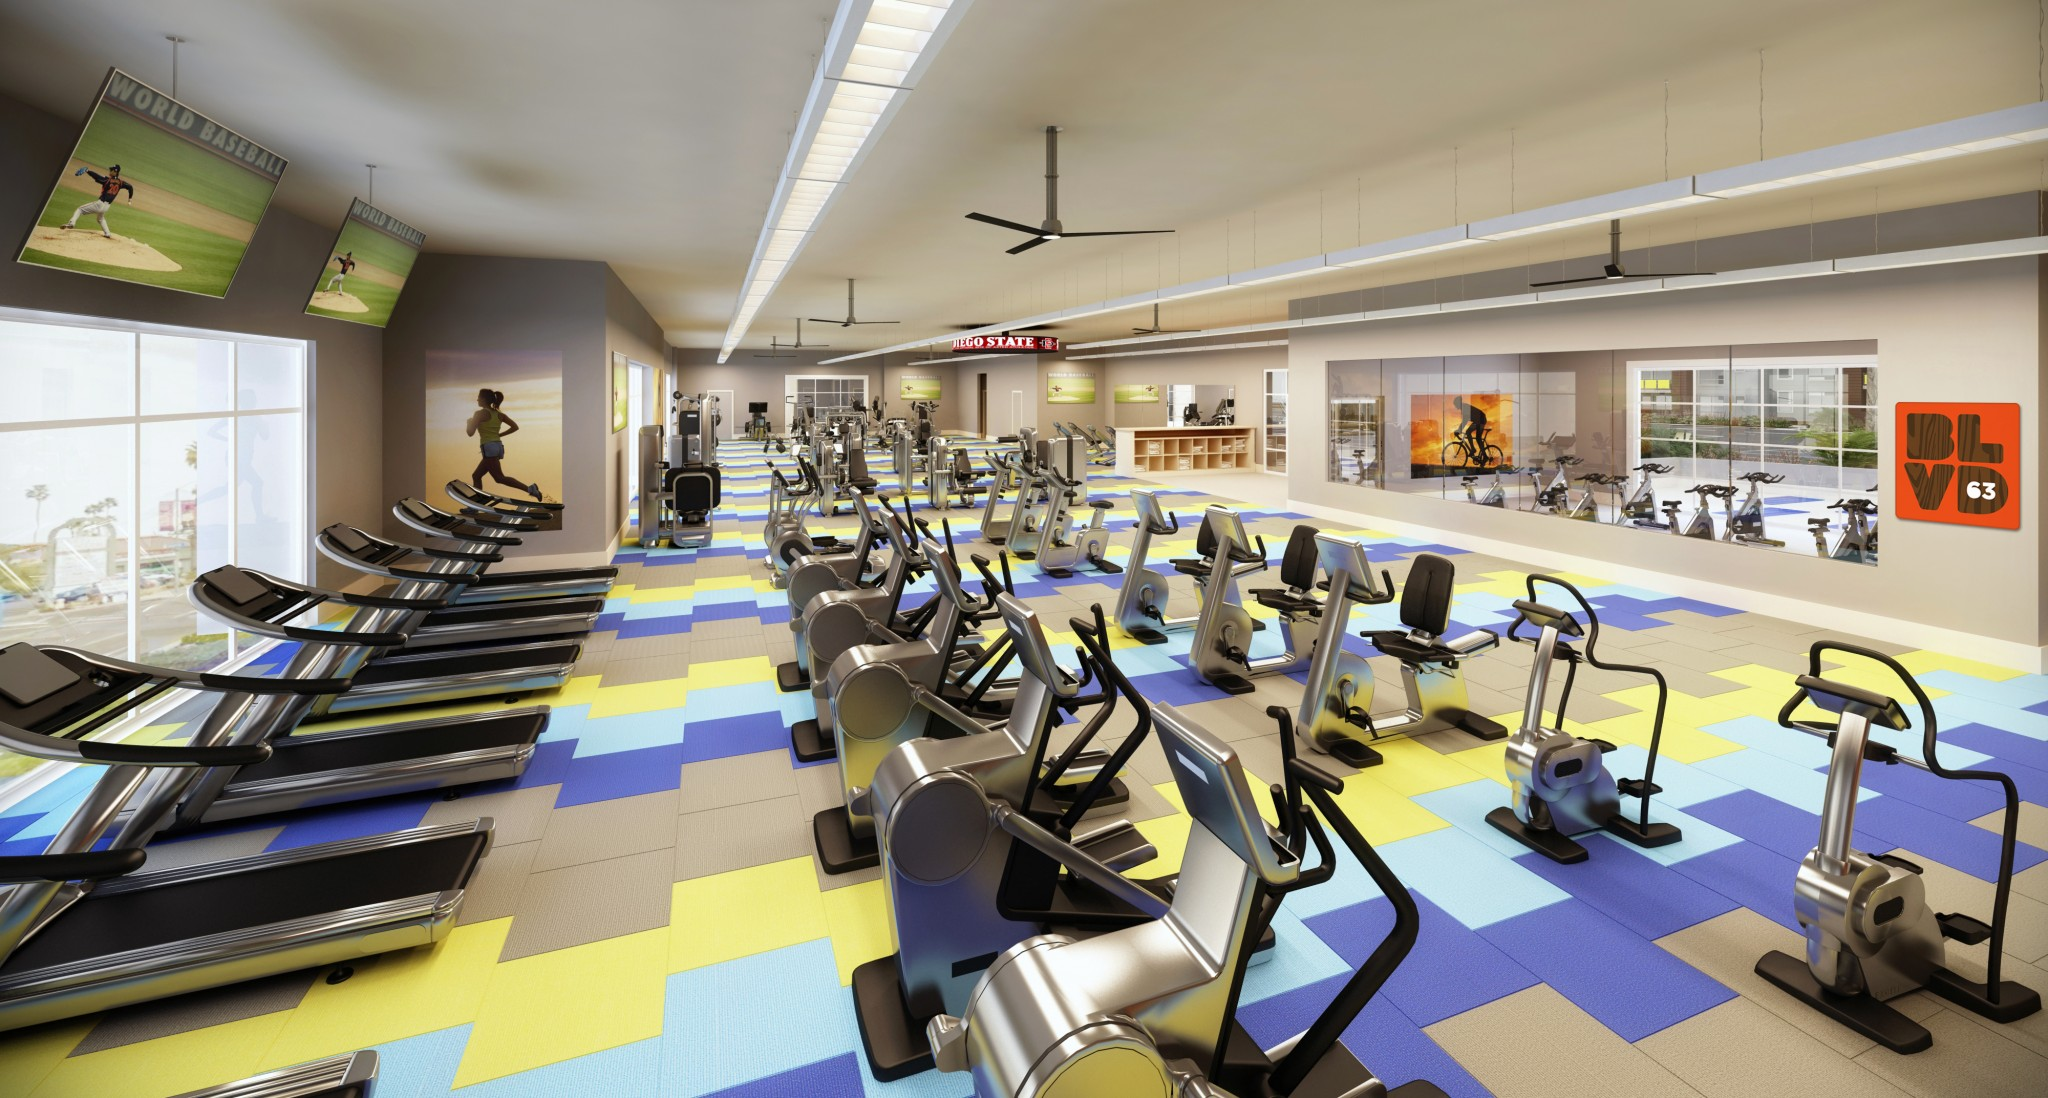 Interior of fitness center with various cardio equipment.